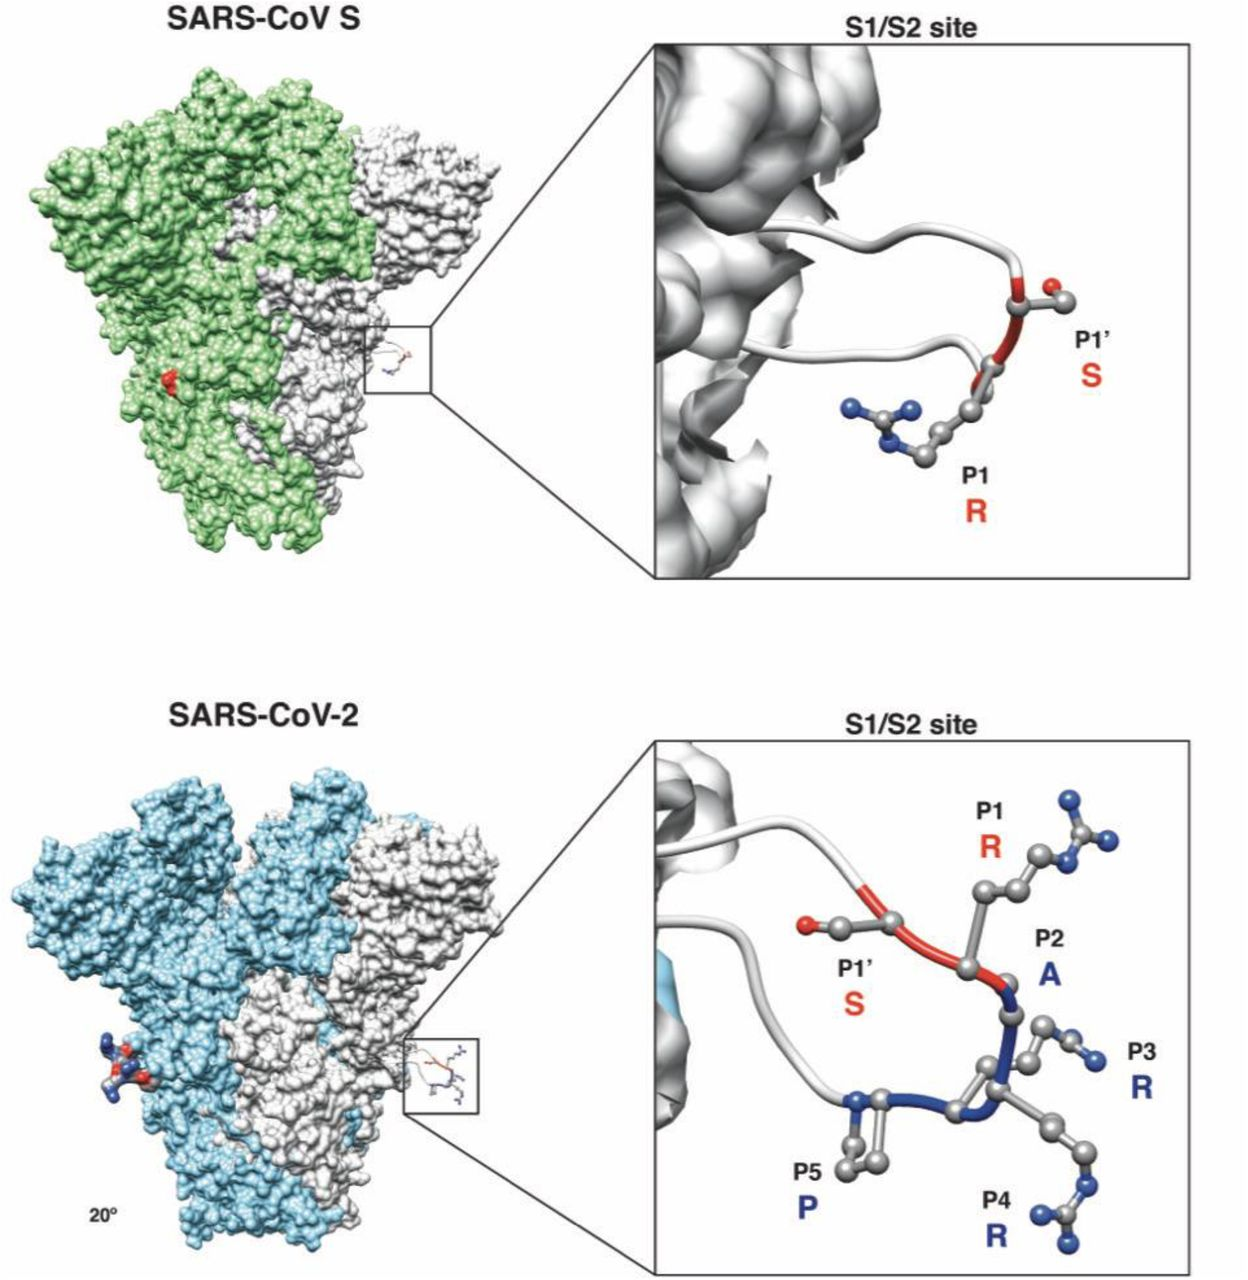 Predicted structural model of the SARS-CoV and SARS-CoV-2 S proteins. ( Inset ) Magnification of S1/S2 site with conserved R and S residues (red ribbon) and the unique four amino acid insertion P-R-R-A for SARS-CoV-2 (blue ribbon) are shown. The P's denote the position of that amino acid from the S1/S2 cleavage site, with P1-P5 referring to amino acids before the cleavage site and P1' referring to amino acids after the cleavage site.